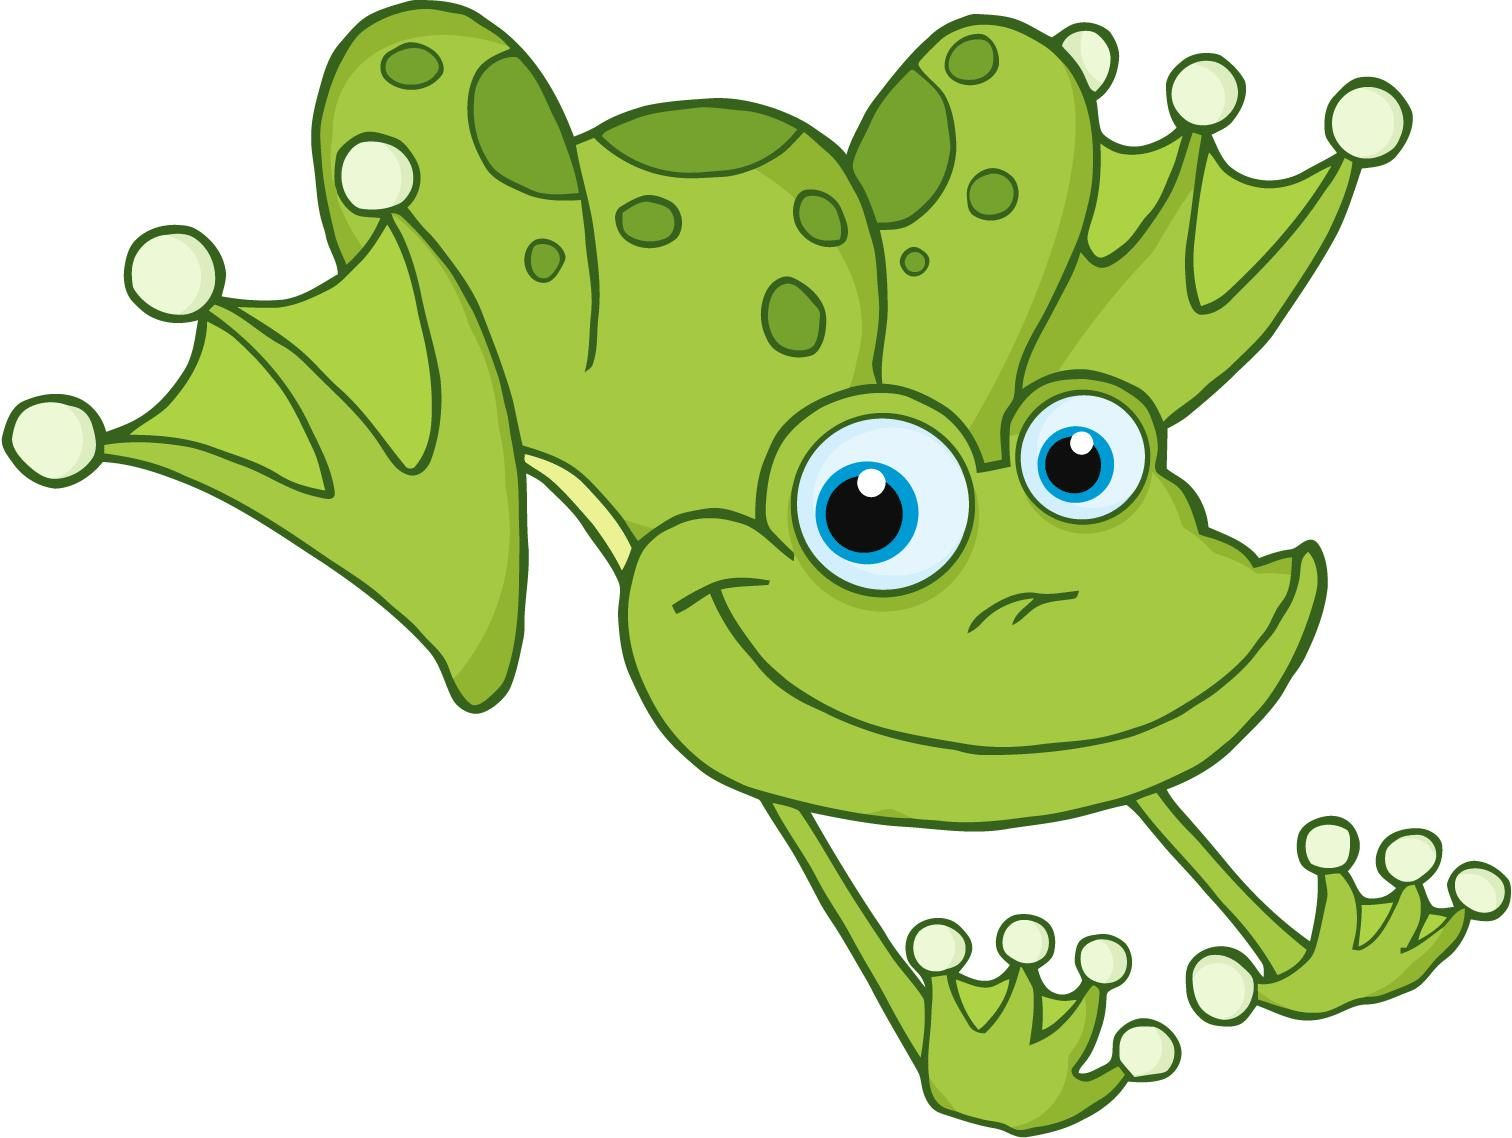 frogs cartoon images this activity as well as all experiments